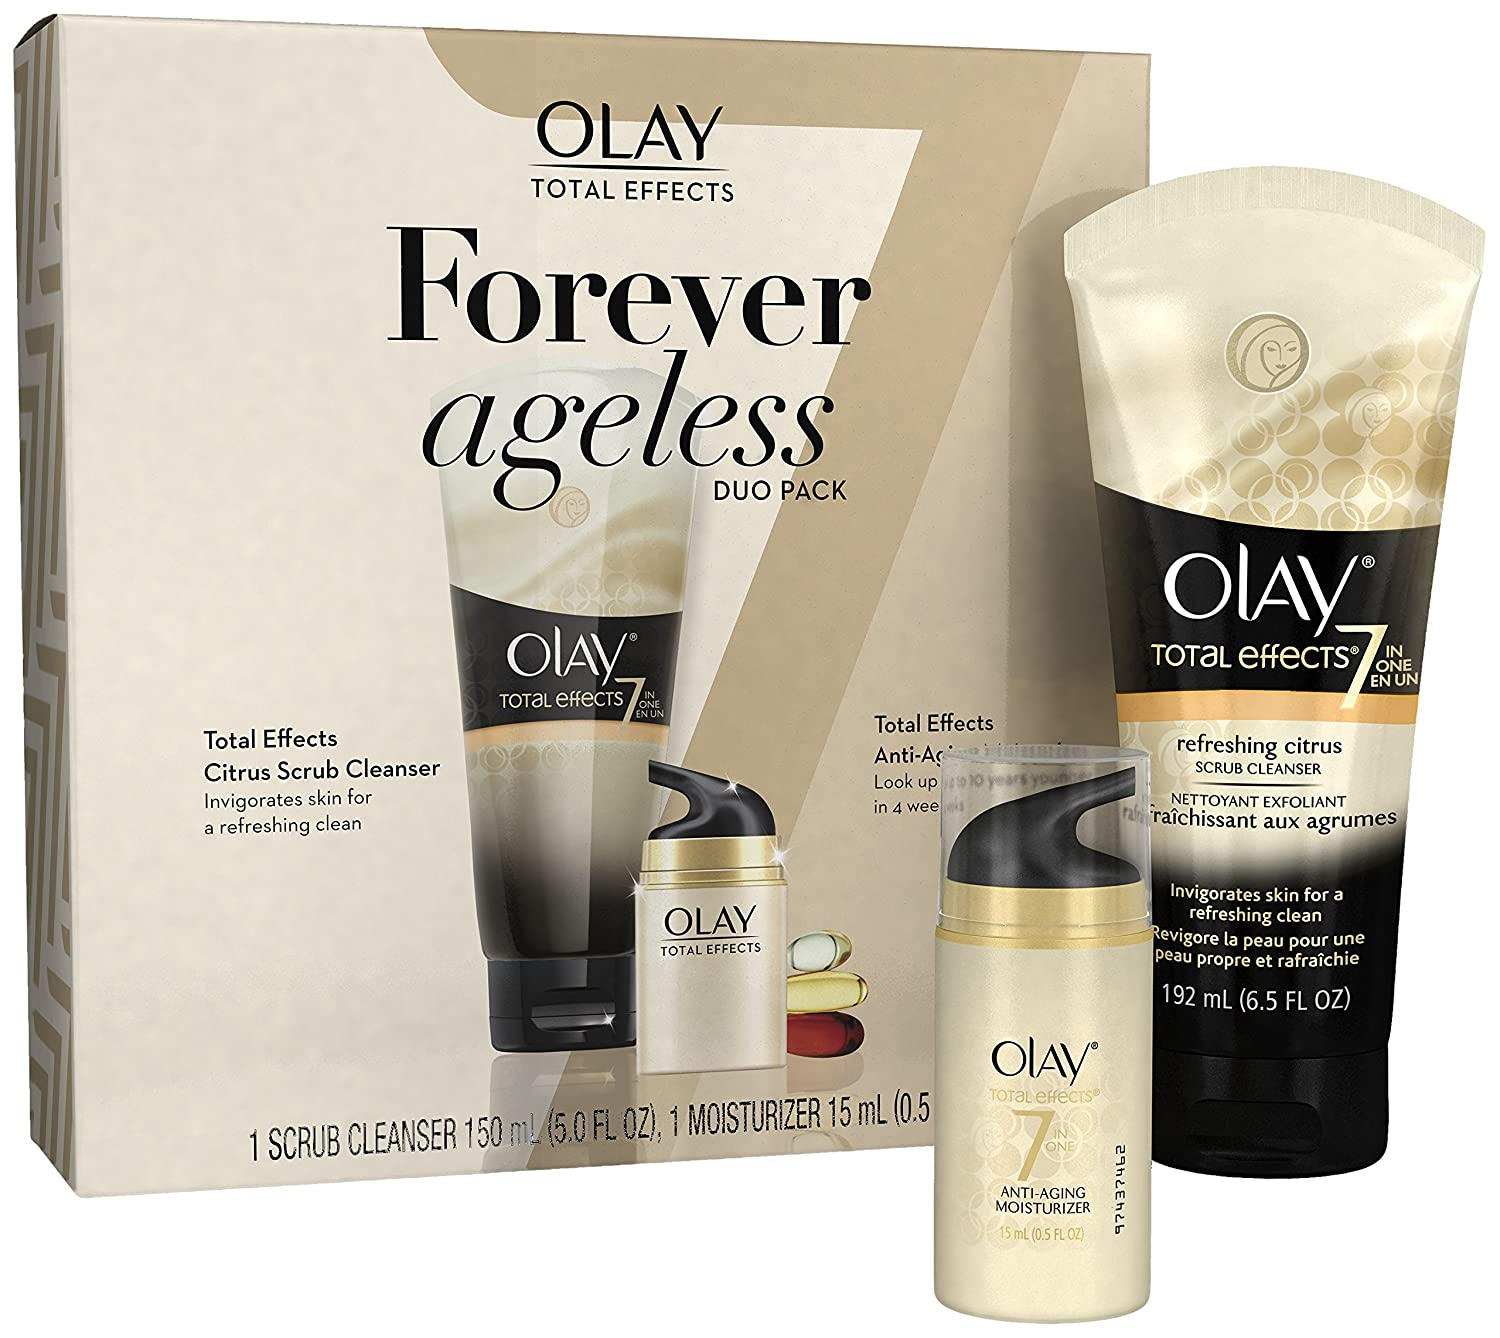 Olay Total Effects Anti-Aging Face Moisturizer, Fragrance-Free 1.7 fl oz NA